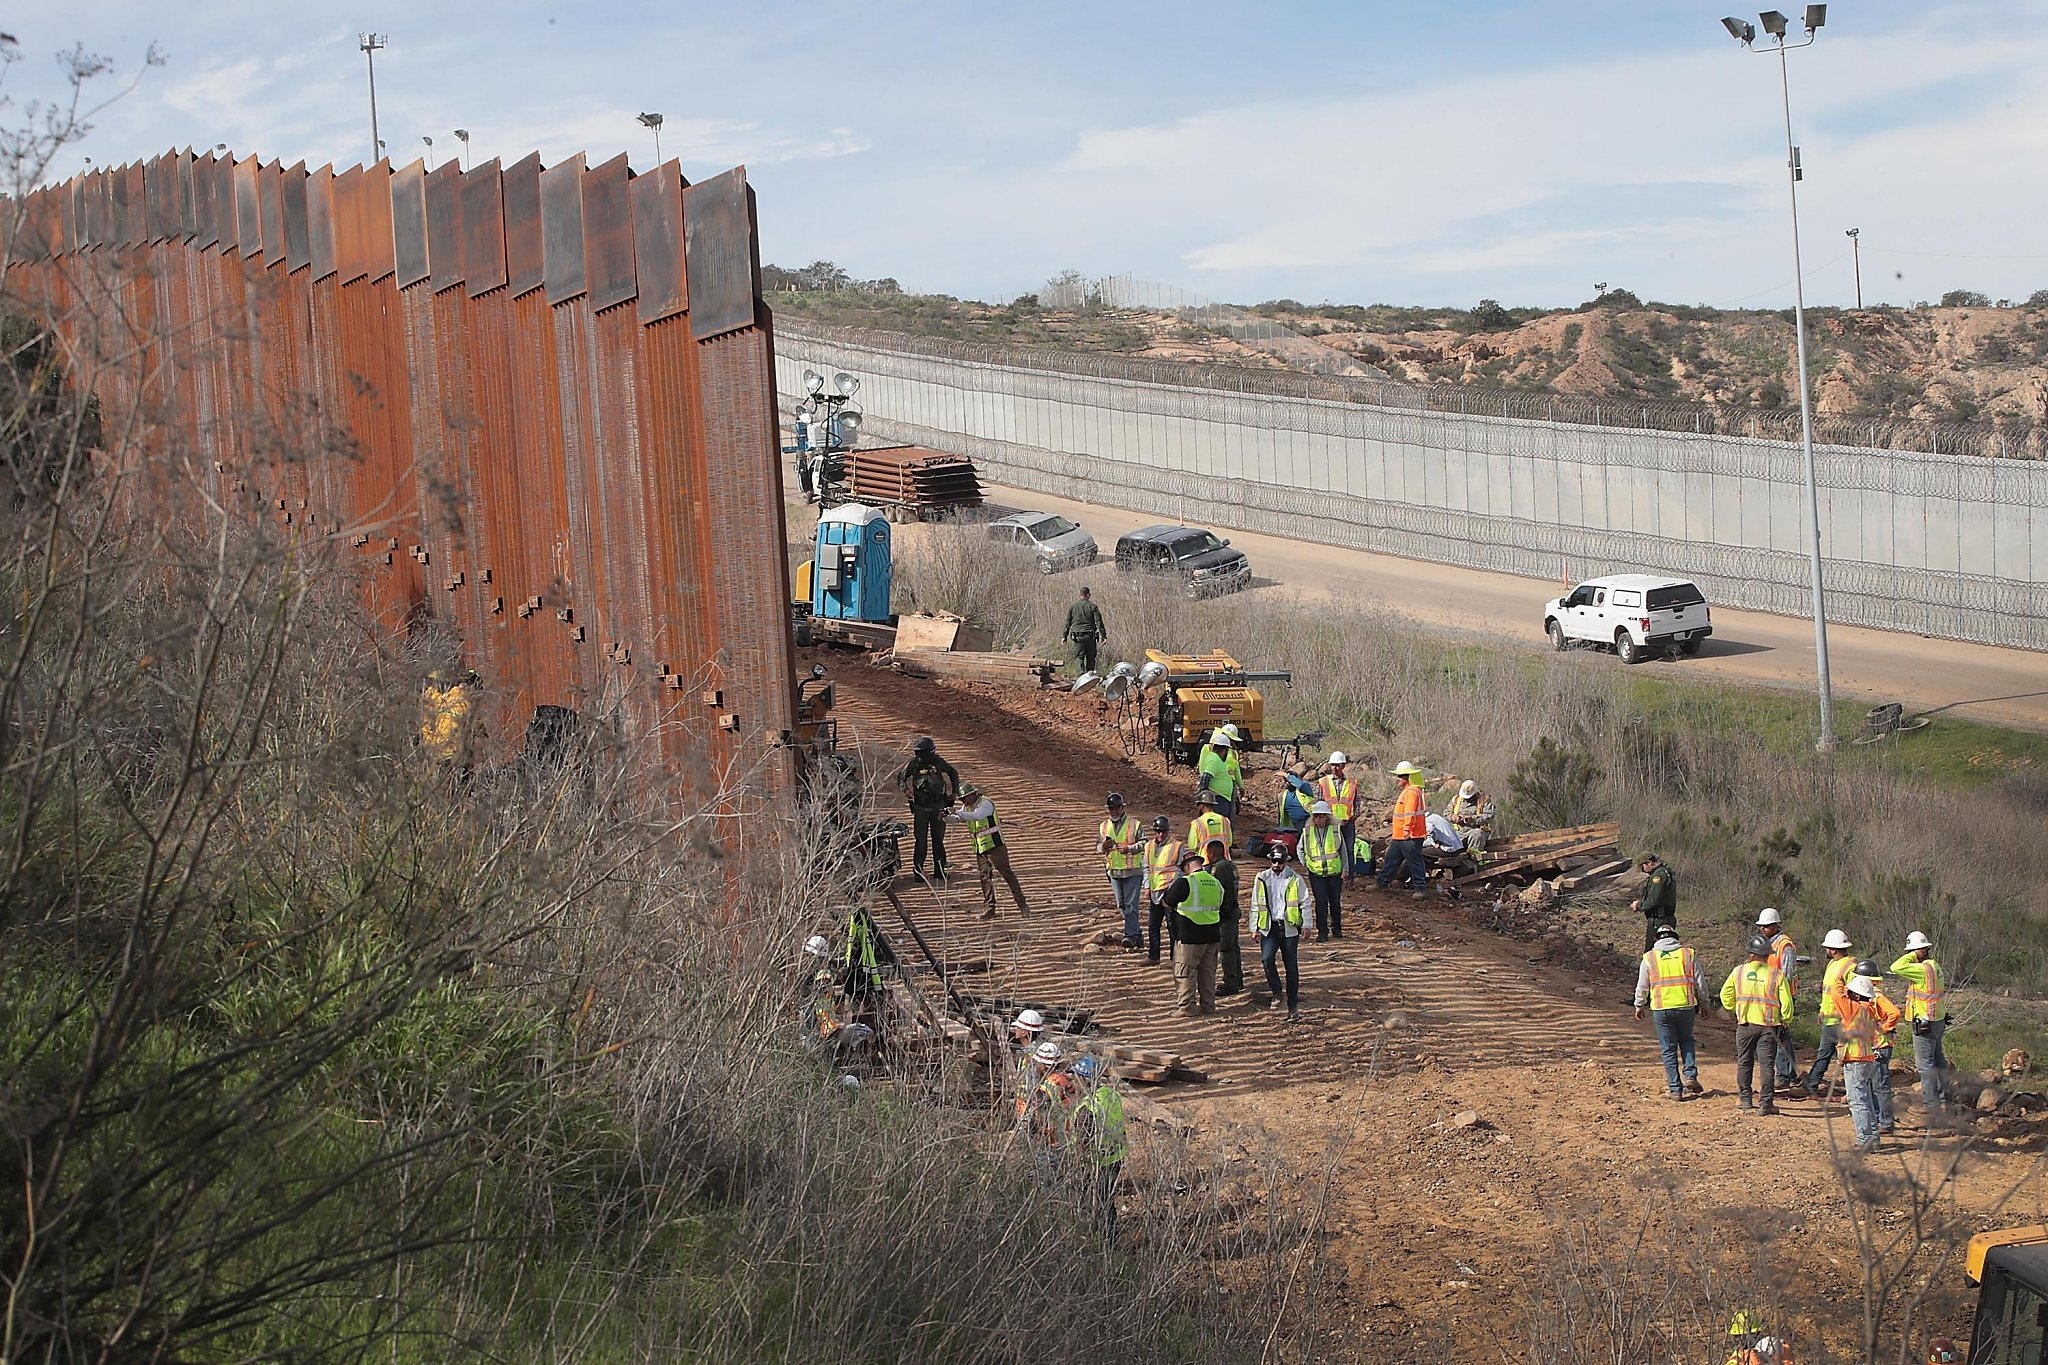 Congress never rejected Trump's border wall funding, US lawyer argues